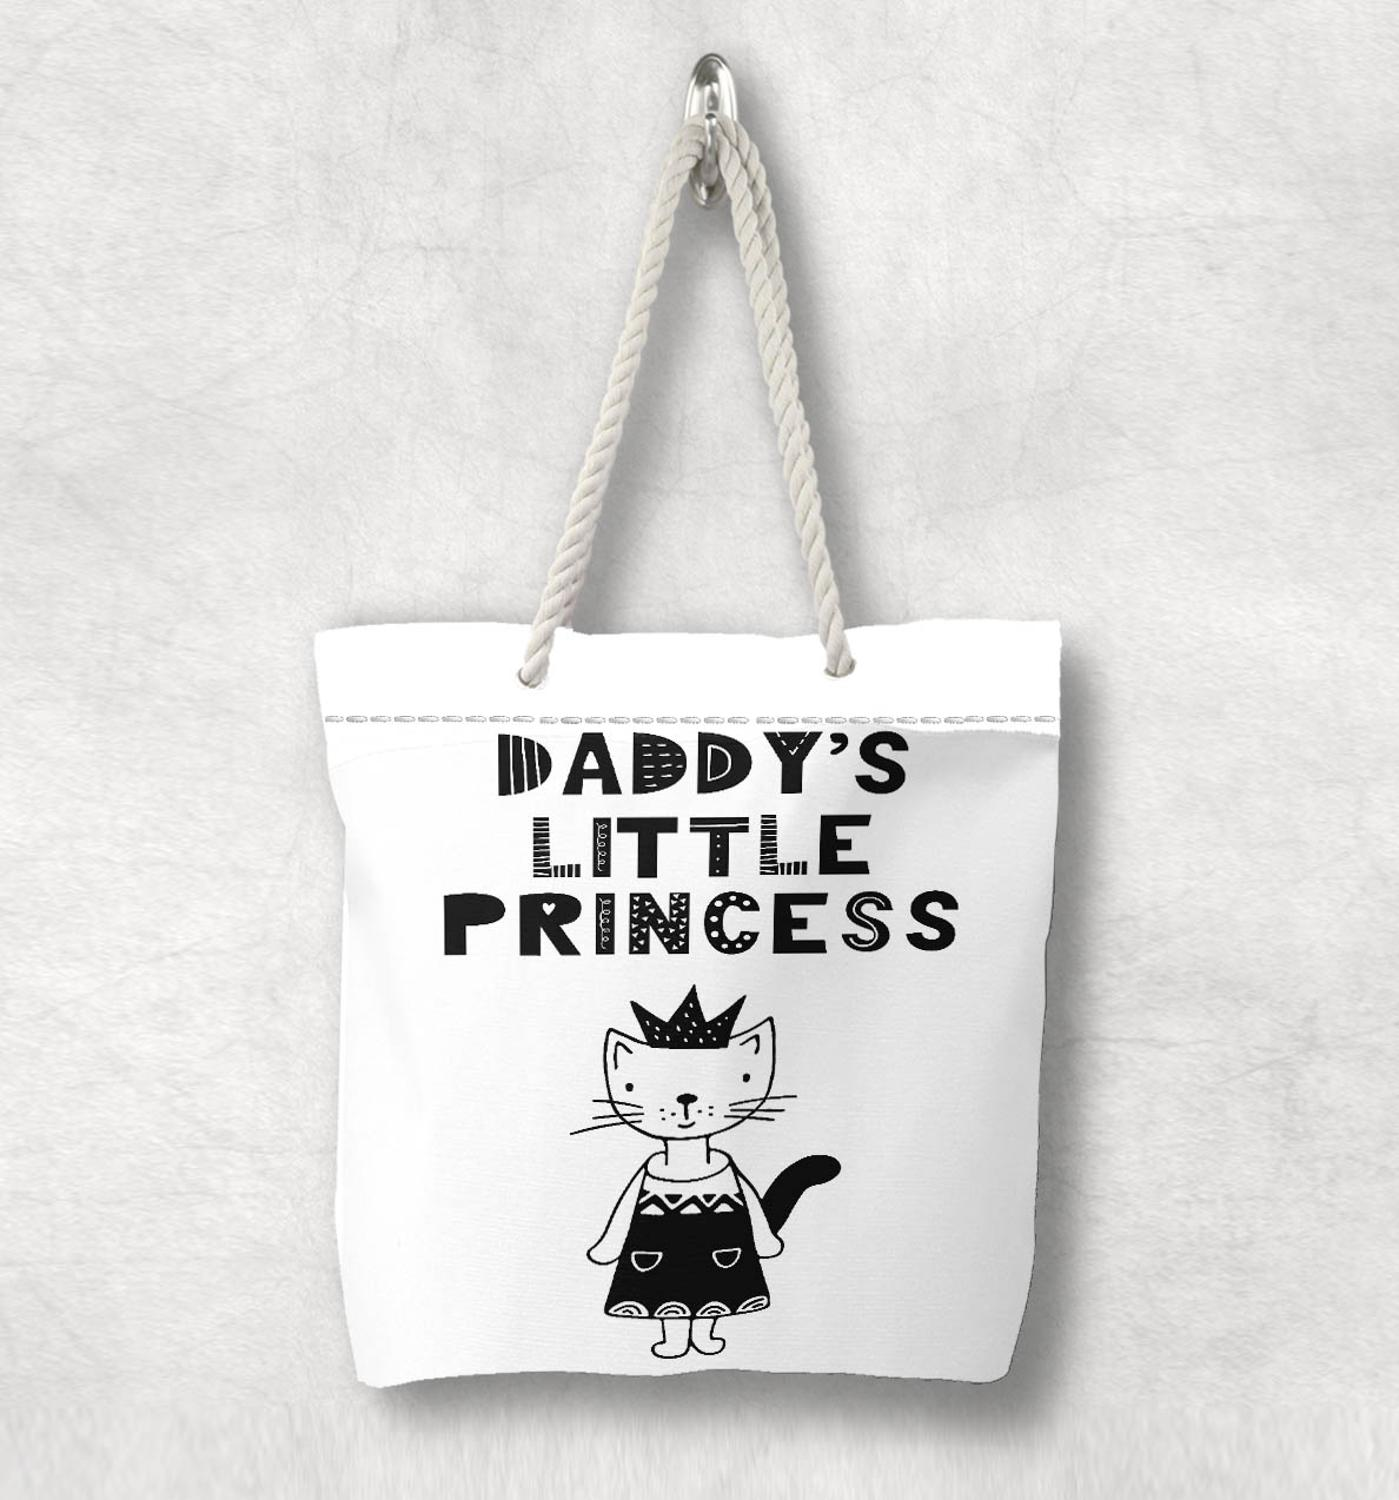 Else Black White Daddys Little Princess Scandinavian White Rope Handle Canvas Bag  Cartoon Print Zippered Tote Bag Shoulder Bag